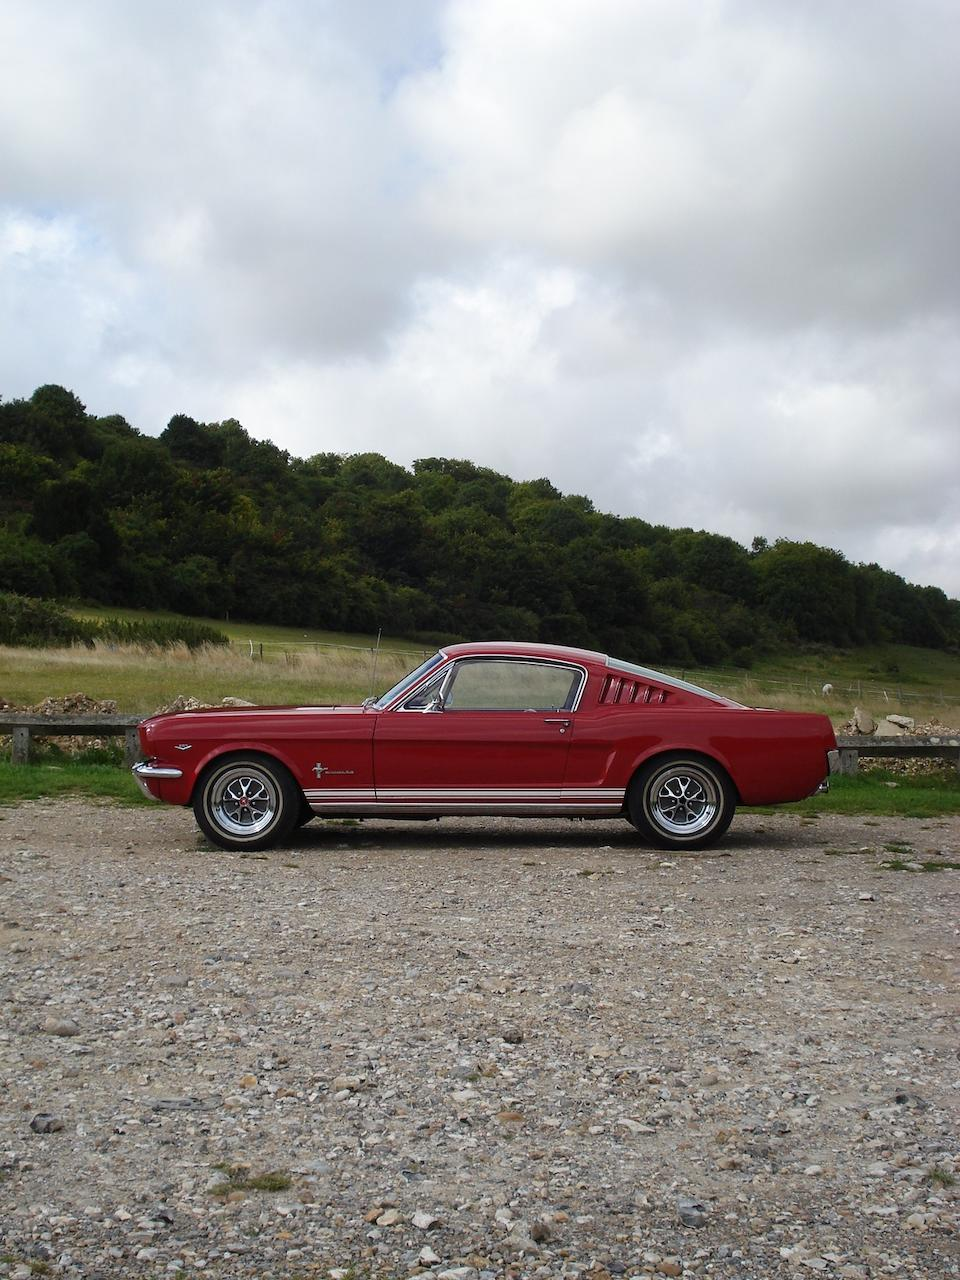 1964 Ford Mustang Fastback Coupé  Chassis no. 5F09C352016 Engine no. 352016